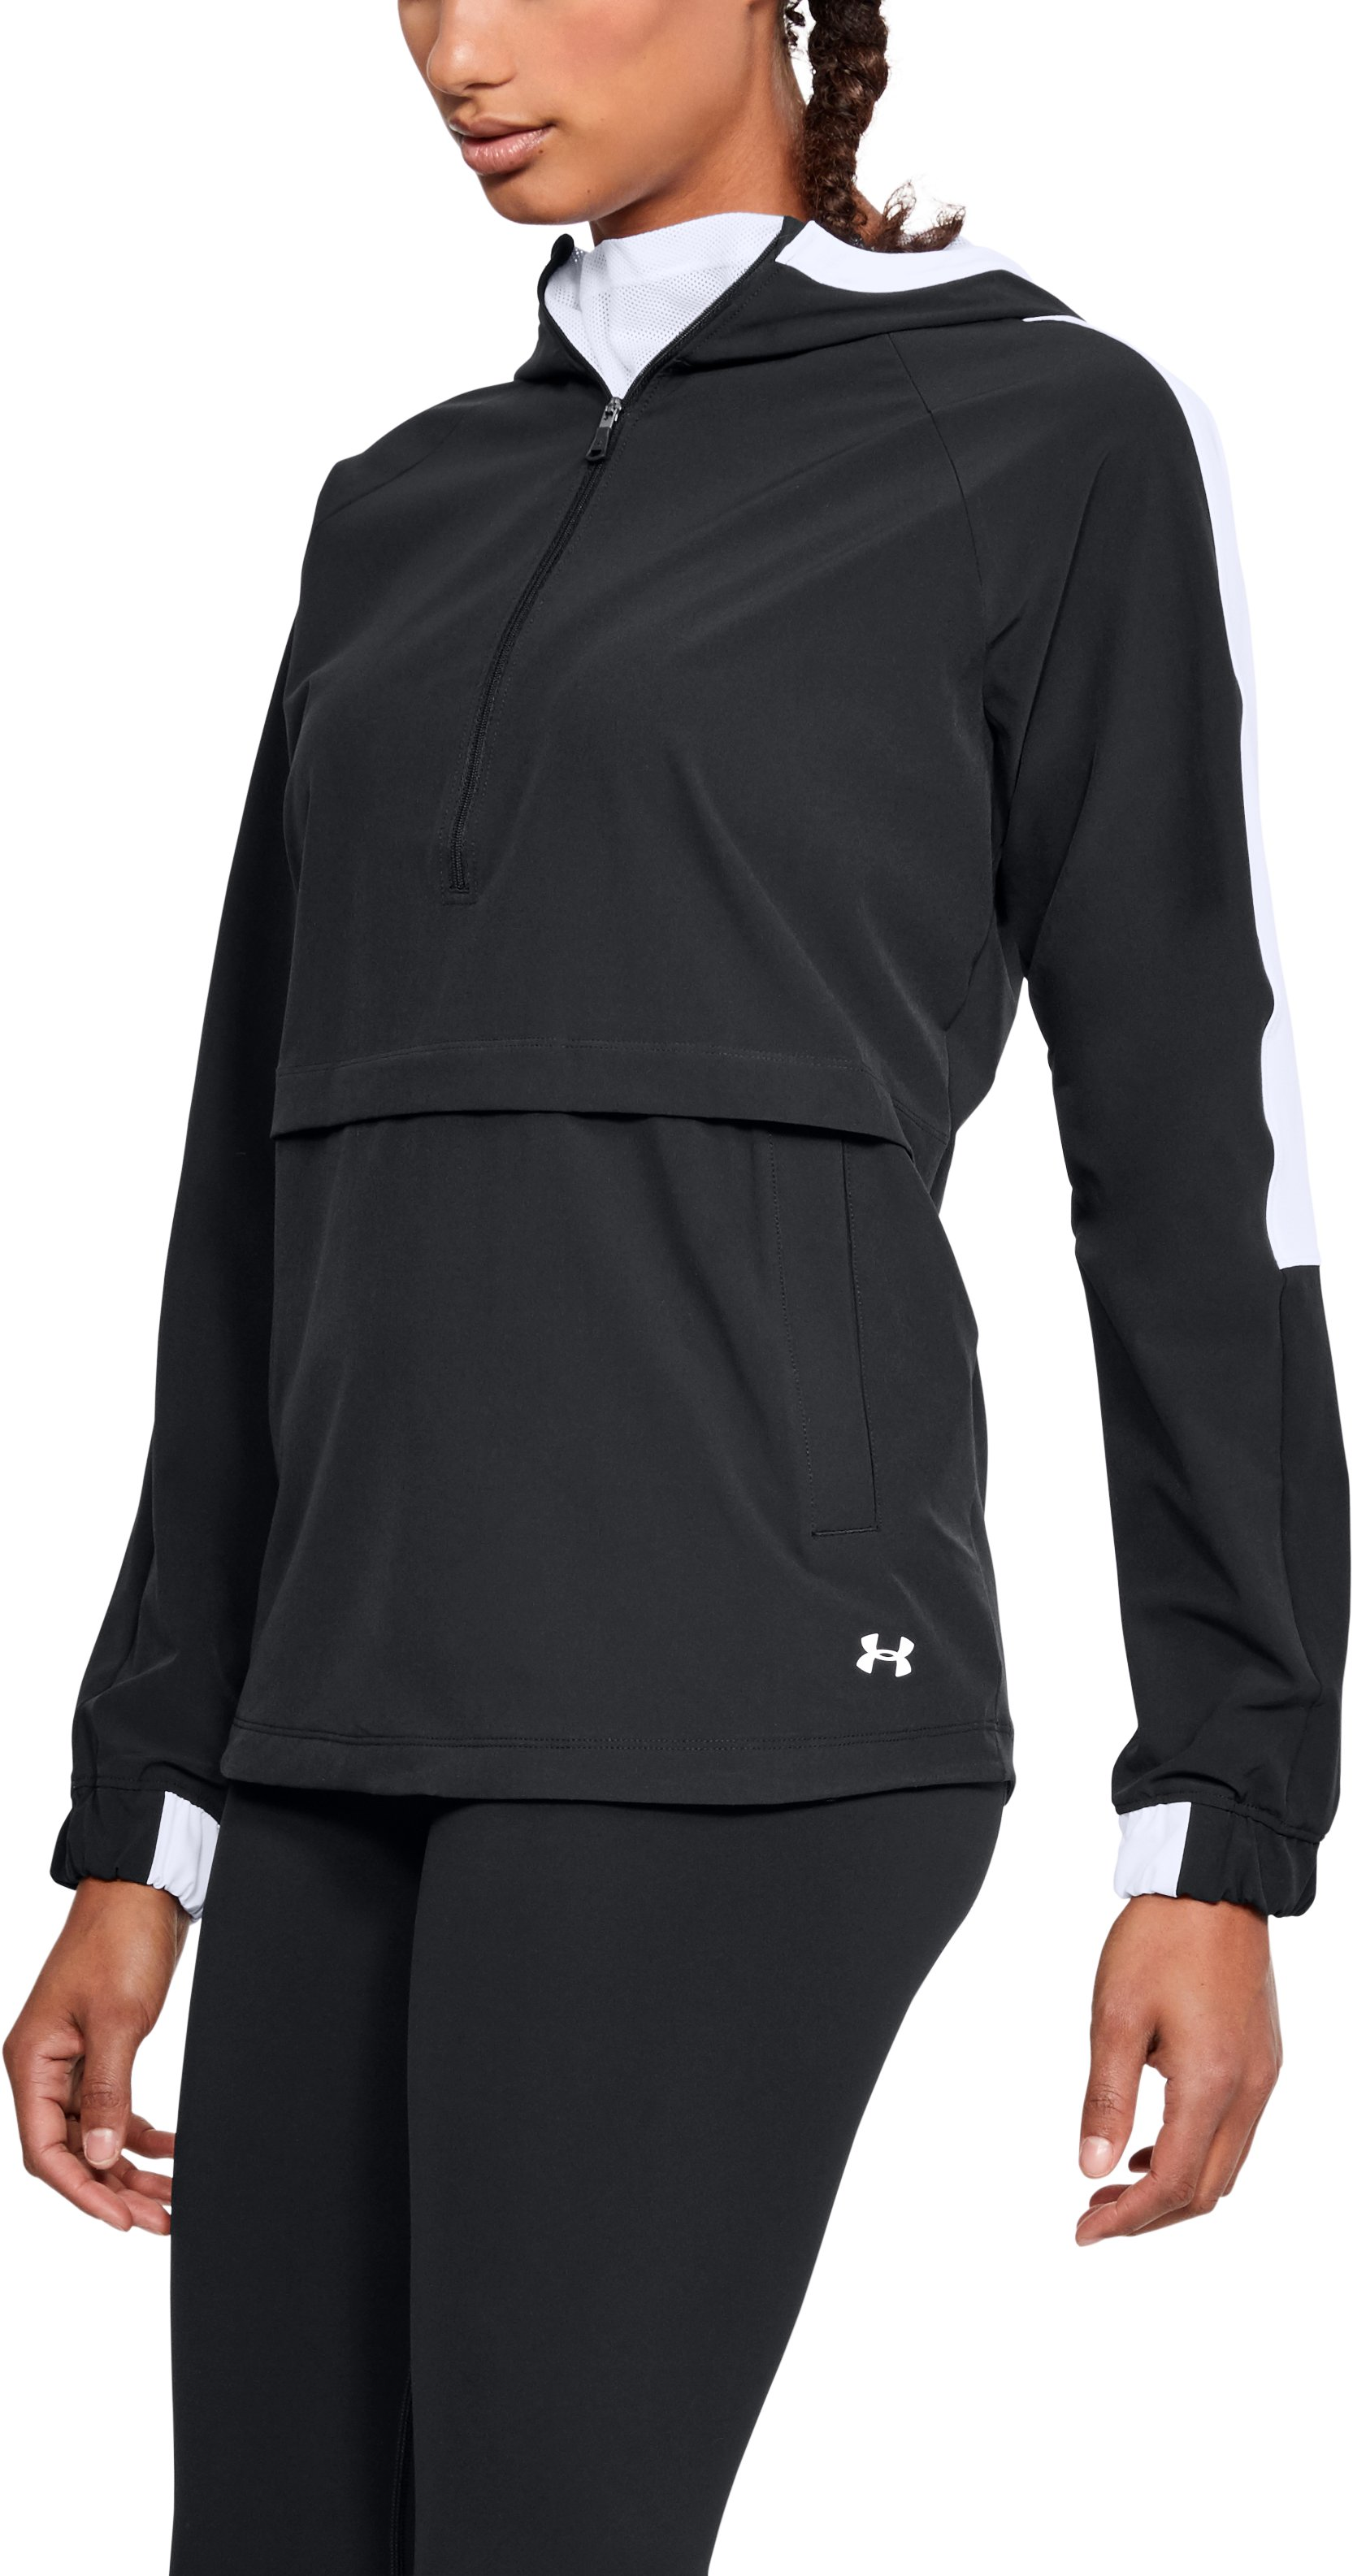 small jackets Women's UA Storm Woven Anorak Jacket Nice athletic jacket...Sized for comfort; looks beautiful...This AWESOME!!